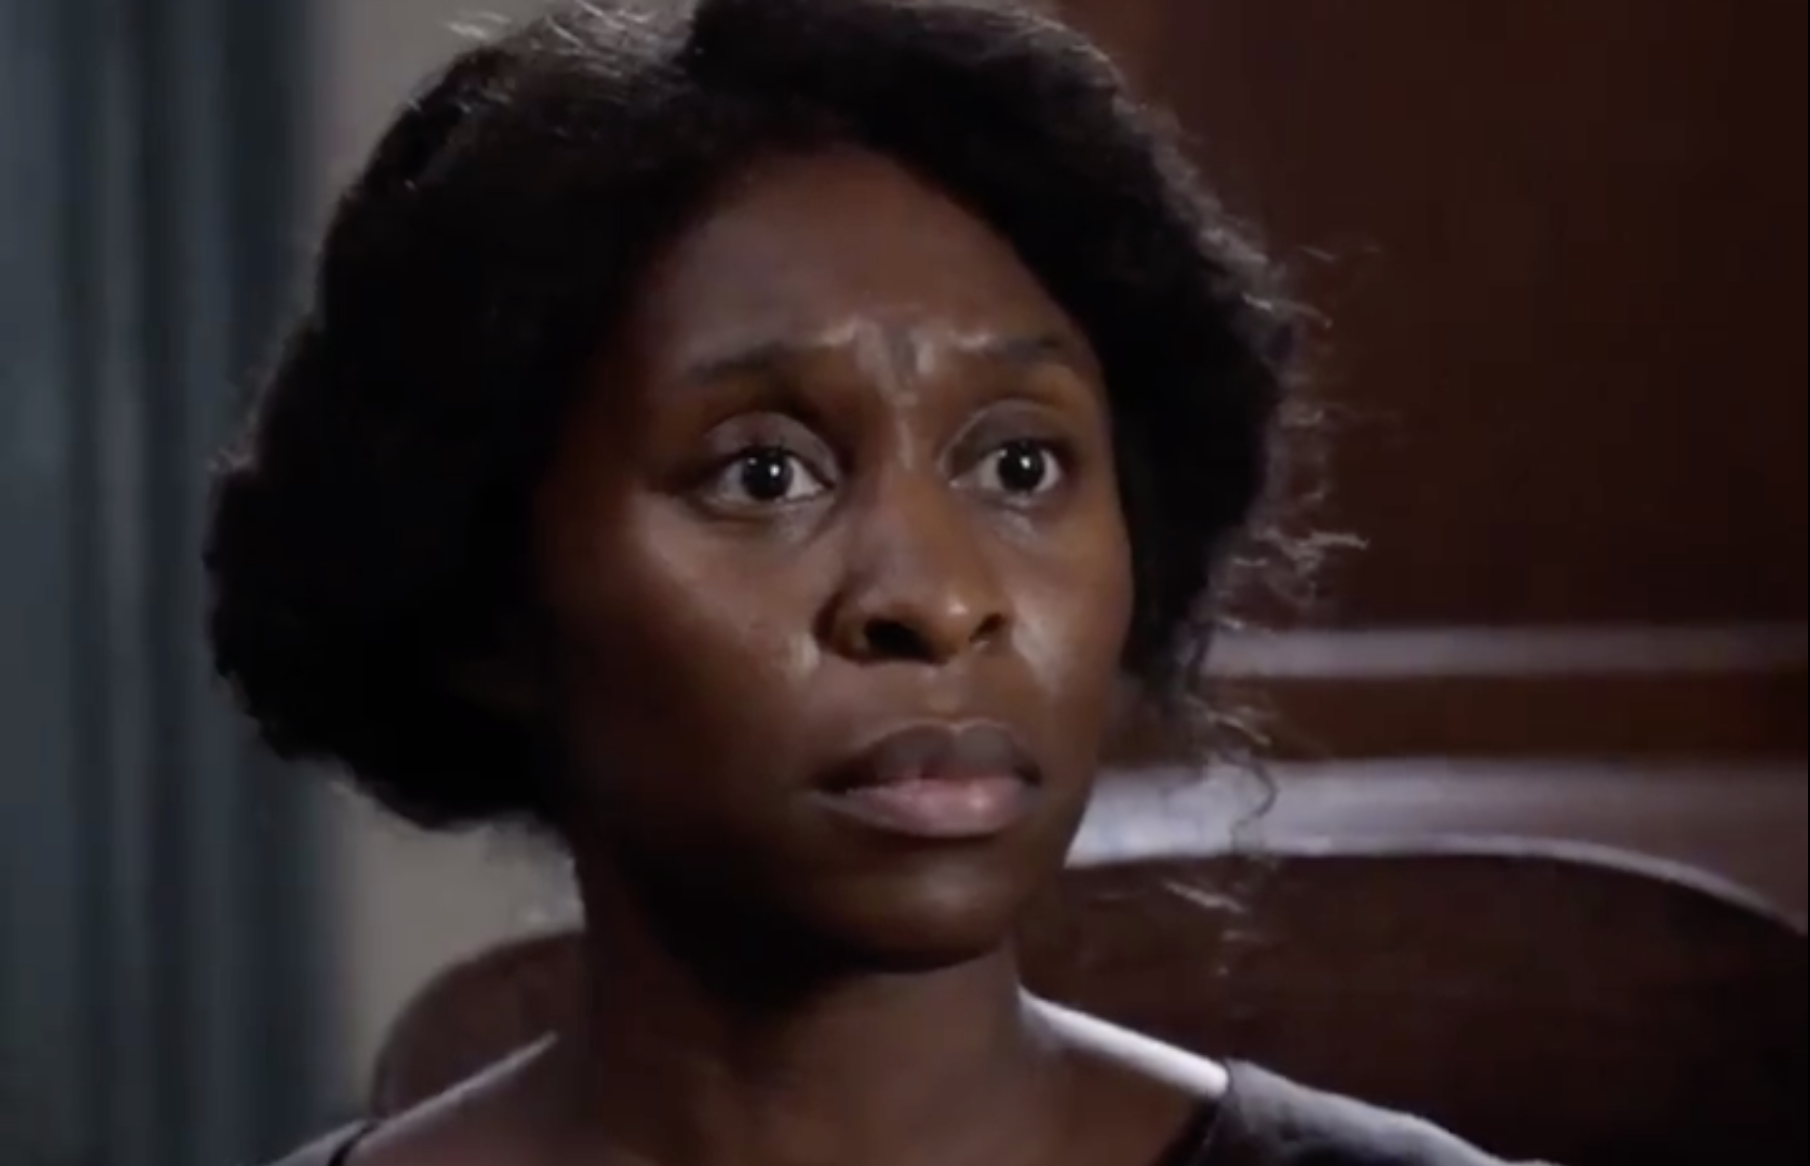 Some plan to #BoycottHarriet after biopic trailer starring Cynthia Erivo is released: She openly mocks our culture